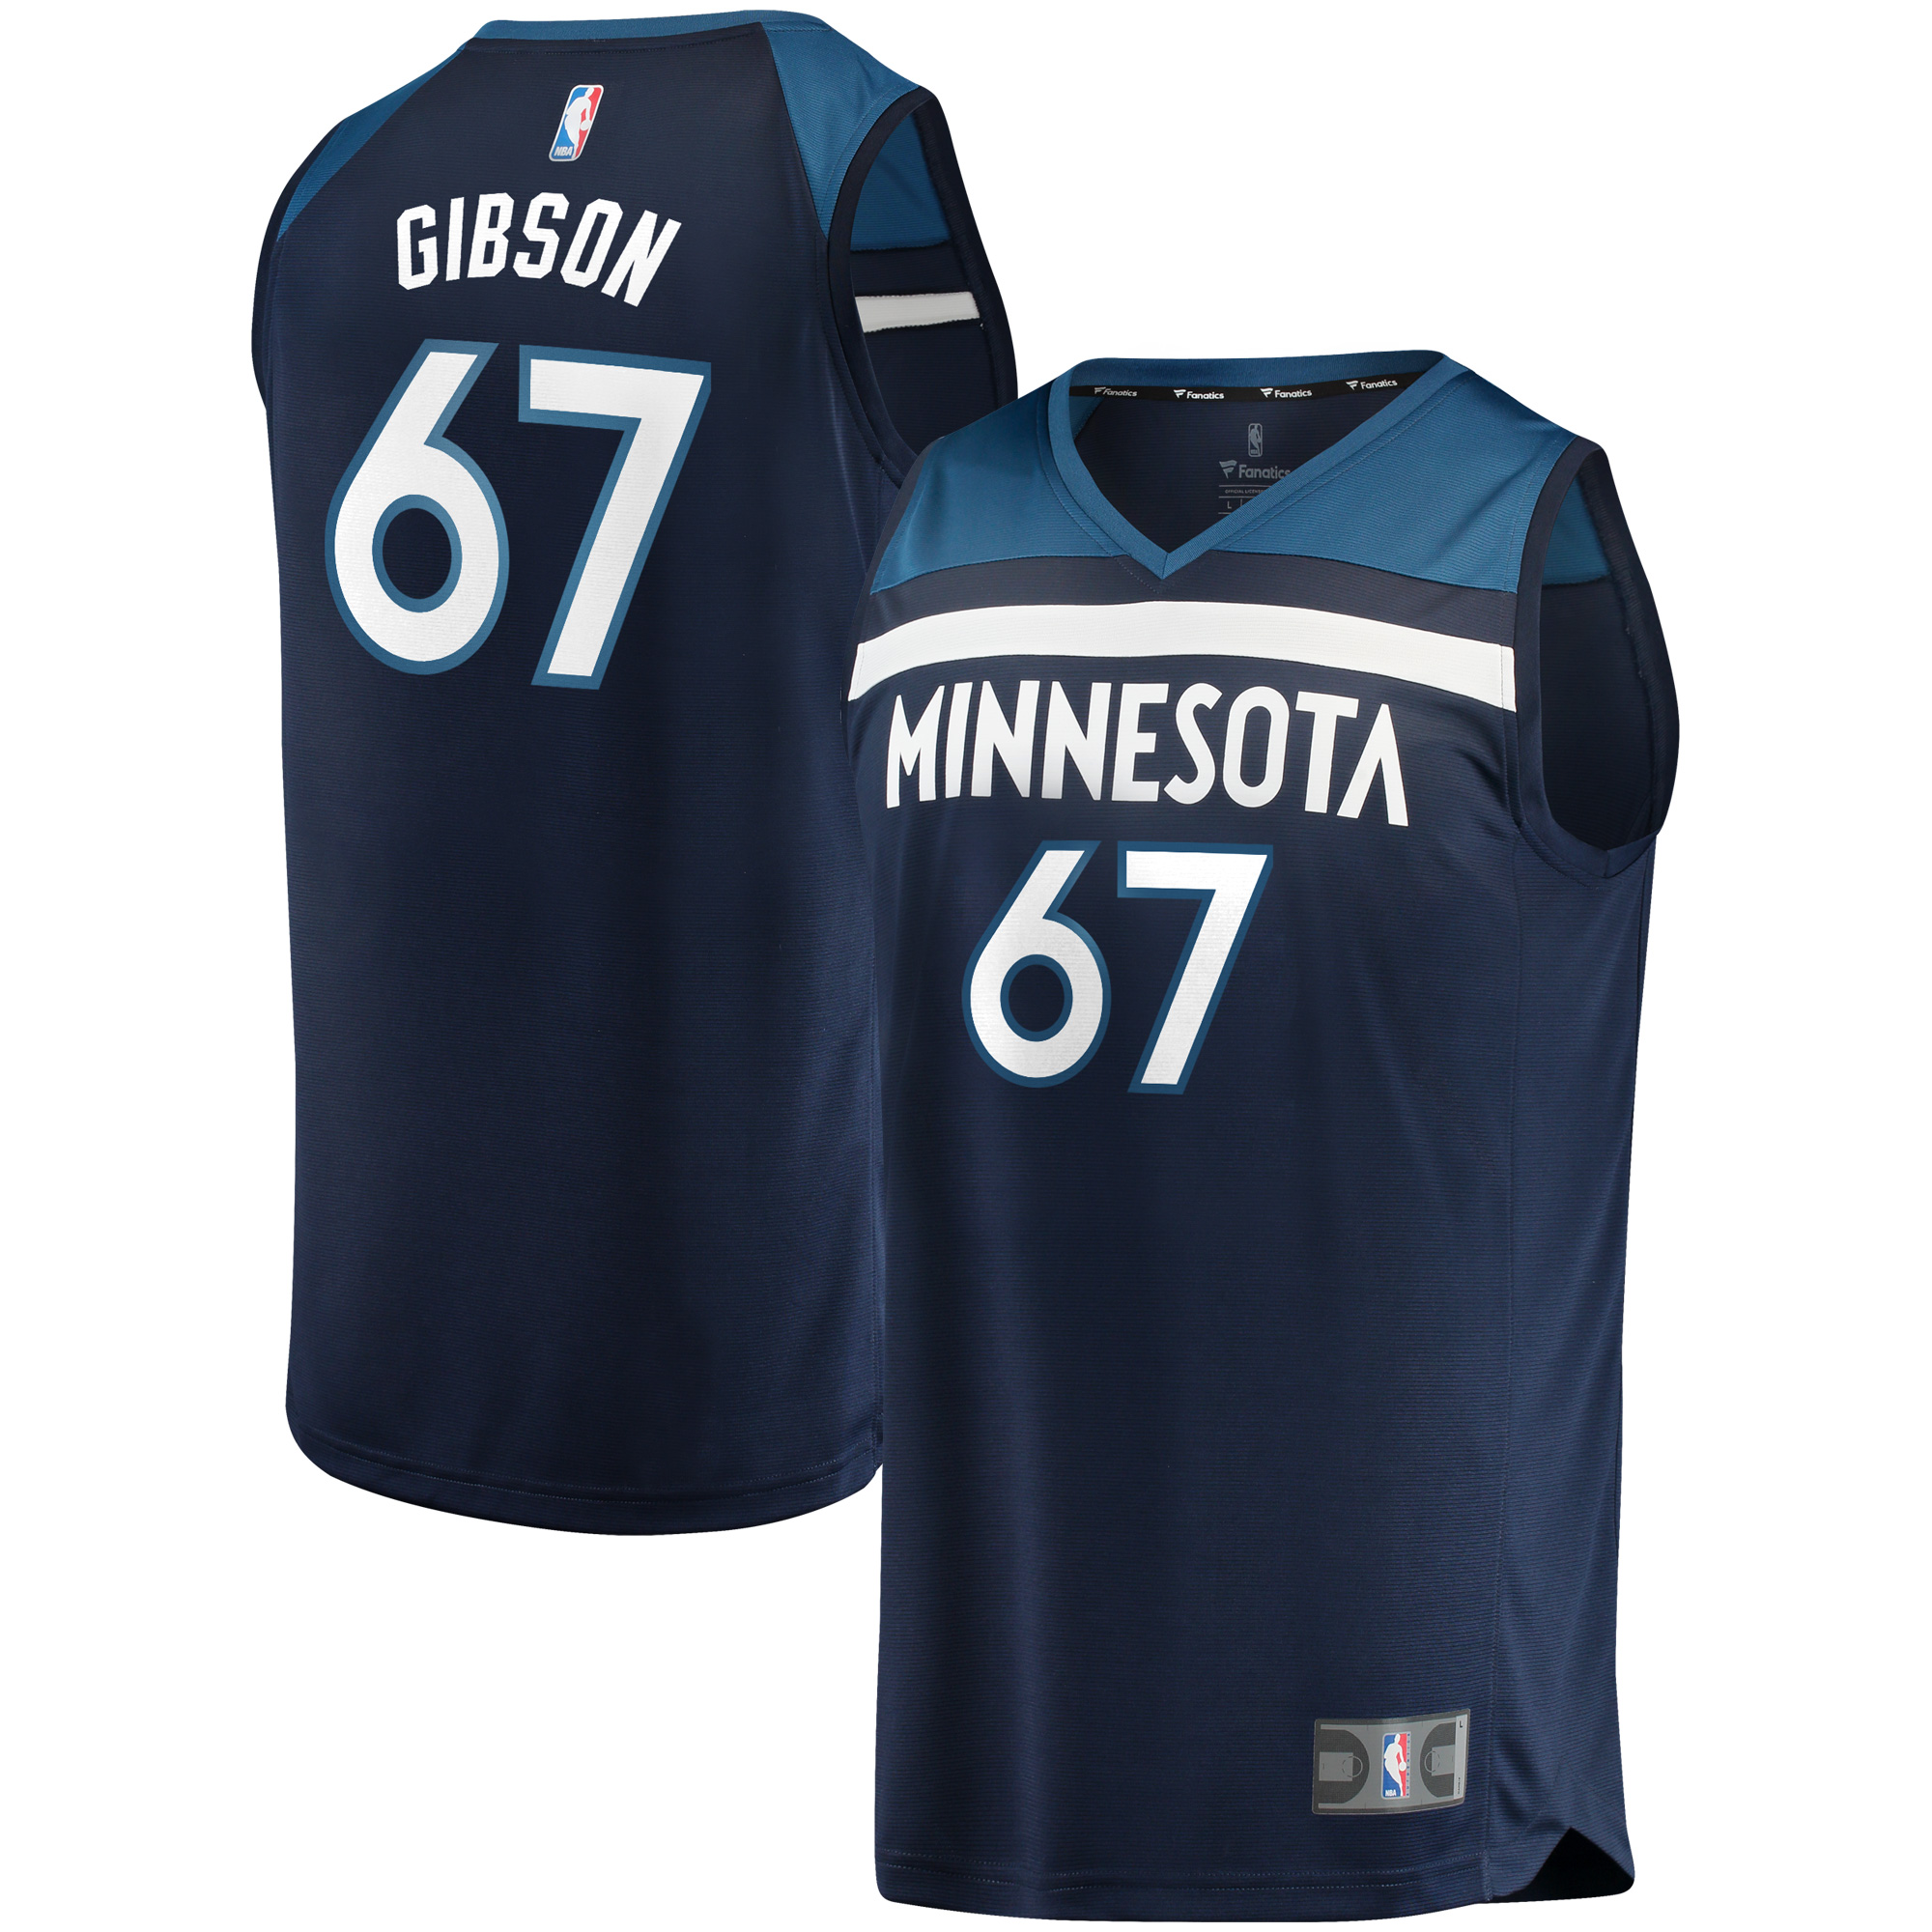 Taj Gibson Minnesota Timberwolves Fanatics Branded Fast Break Replica Player Jersey Green - Icon Edition - Navy